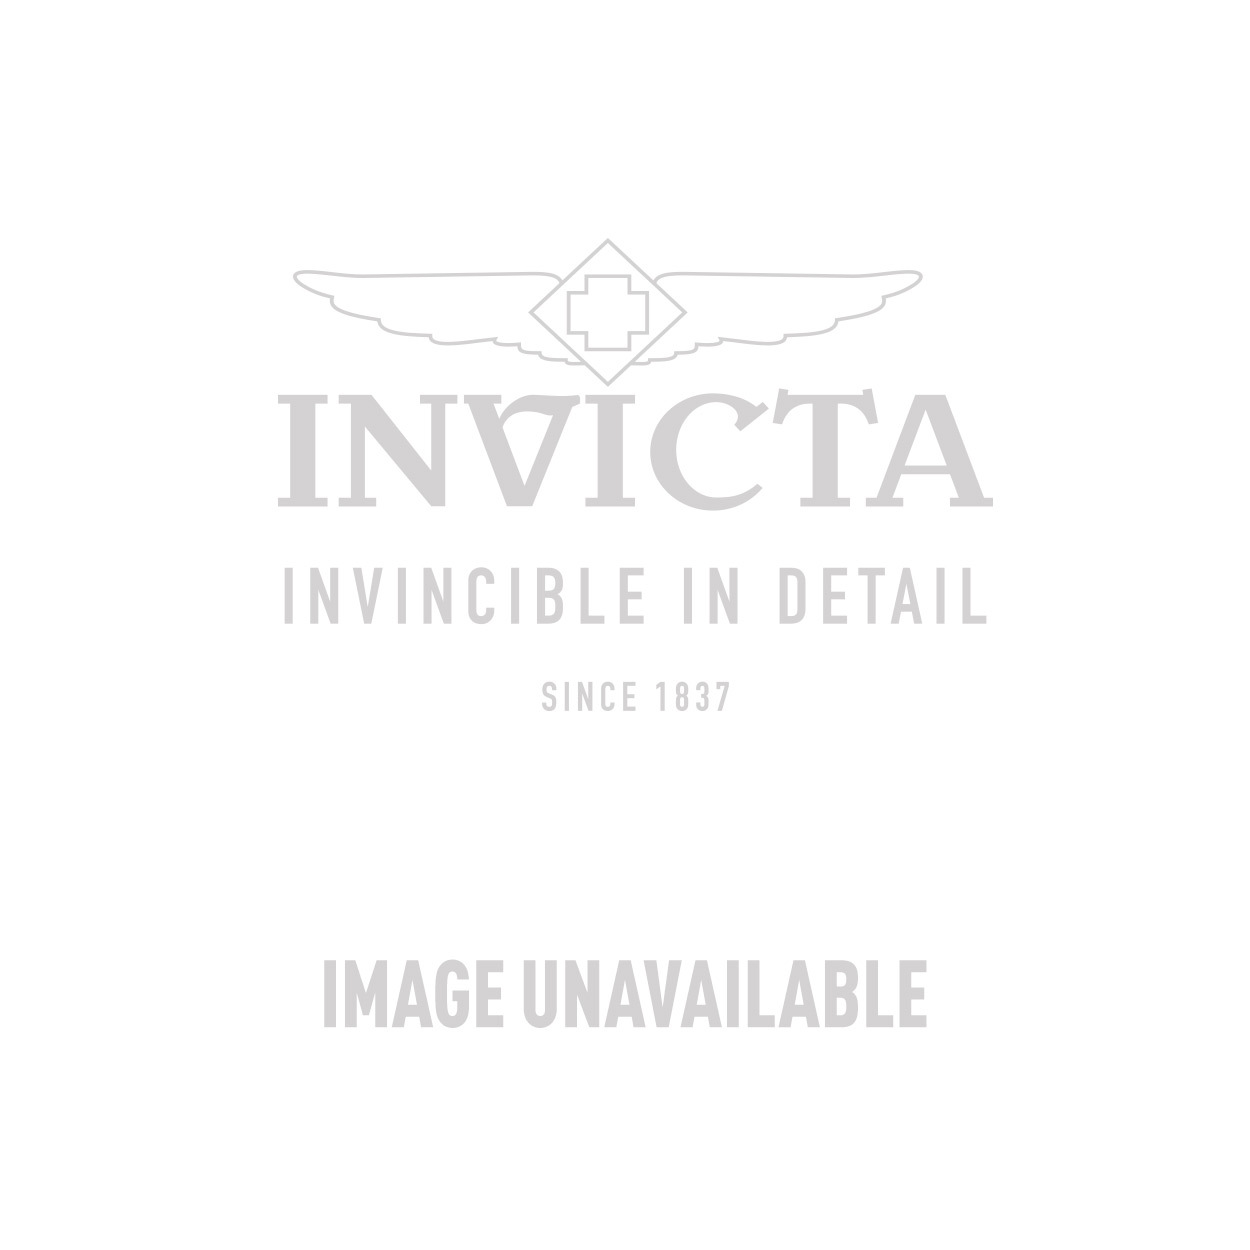 Invicta Angel Swiss Movement Quartz Watch - Gold case with Gold tone Stainless Steel band - Model 17492